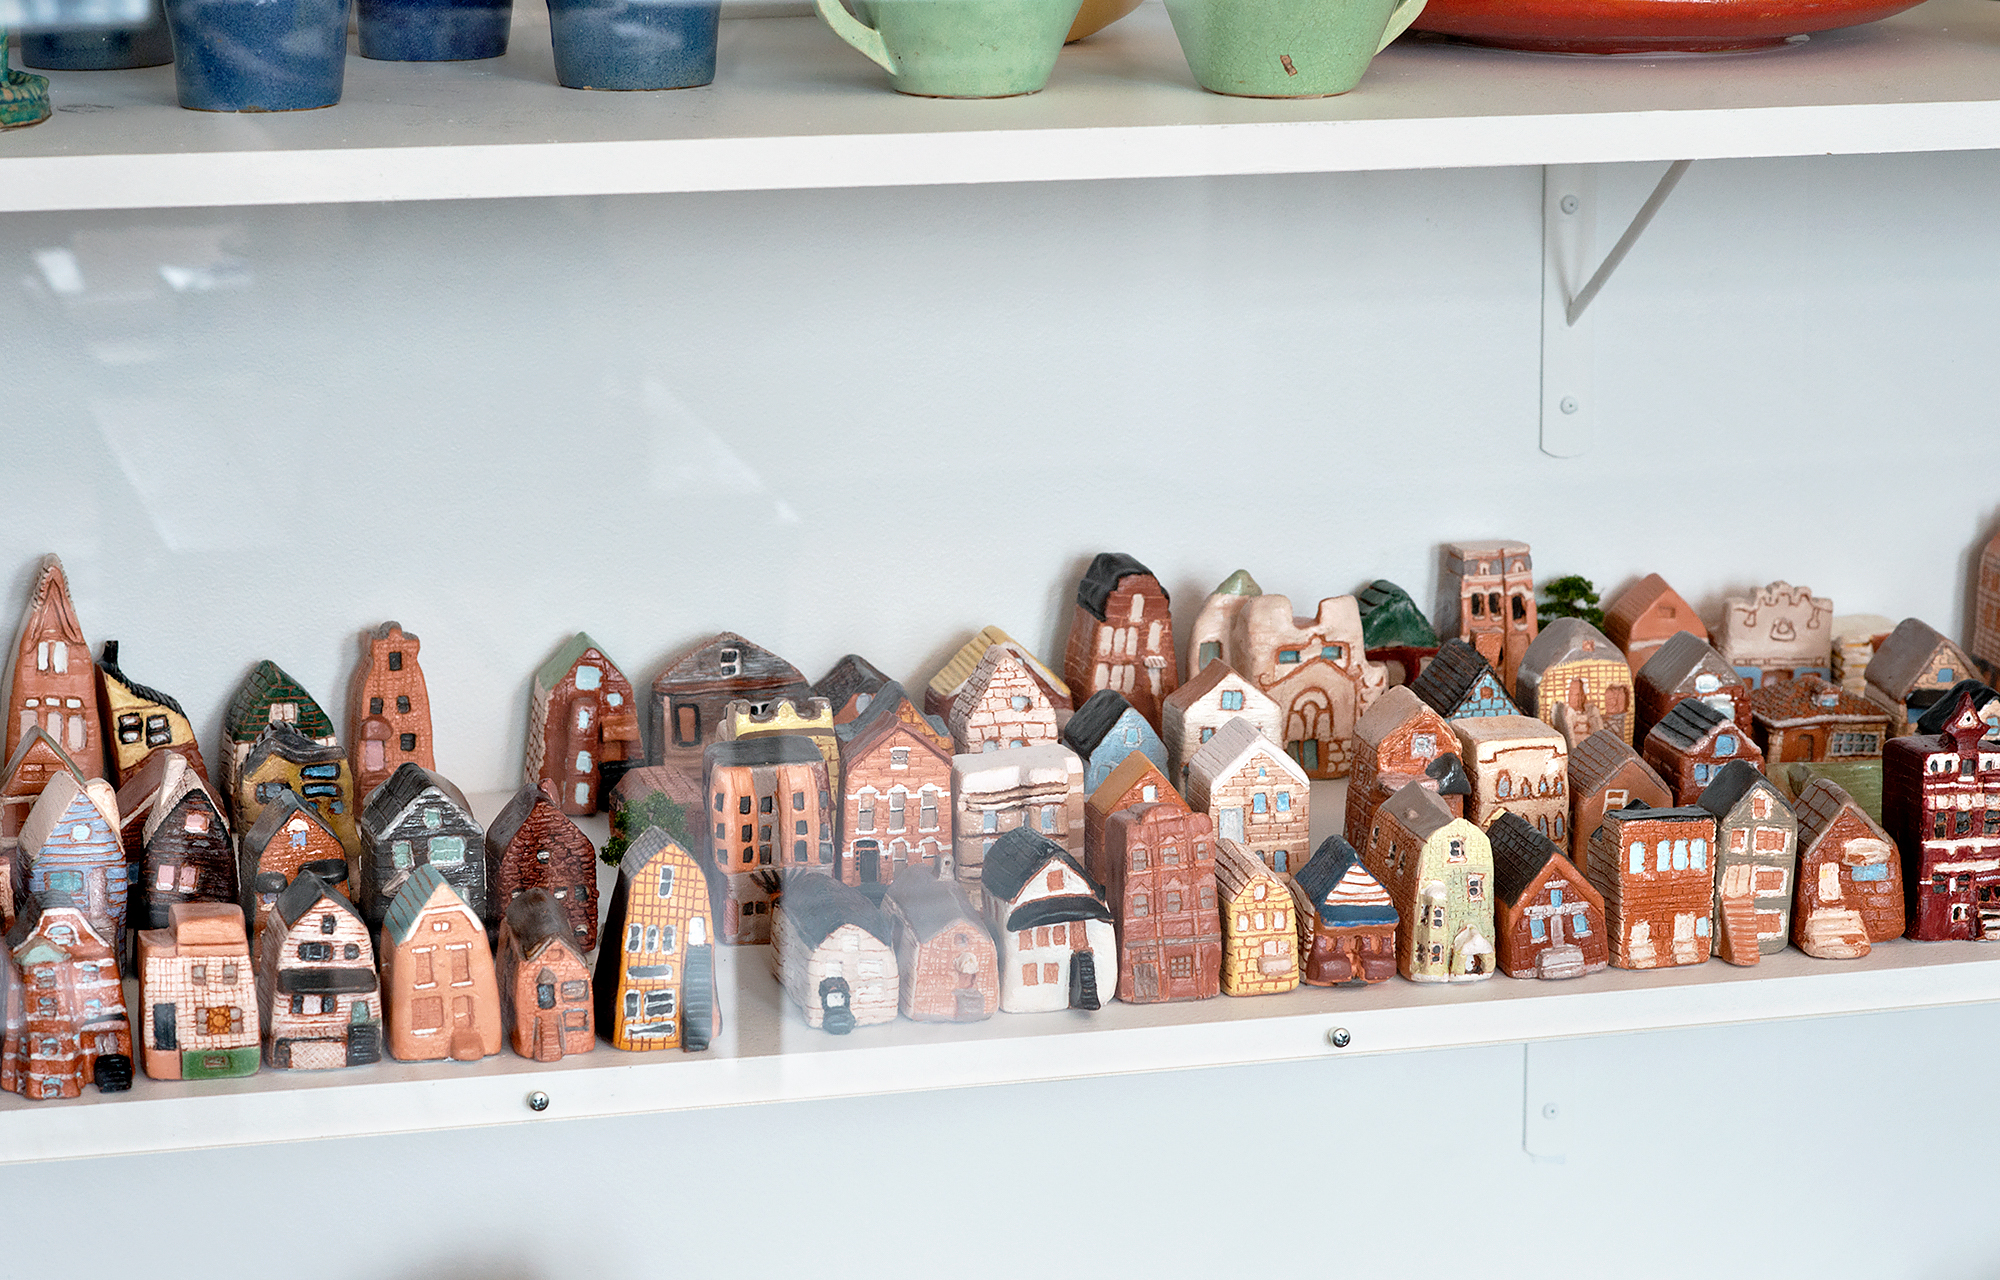 Image: Detail view of ceramic houses and stores made by Nicole Marroquin's students at Benito Juarez Community Academy High School, as seen in a display case at Hull House. The small ceramics reflect a range of different building styles, from brick to colorful siding, and single-family homes to apartment complexes. They are arranged in dense grids similar to the layout of Chicago neighborhoods. Photo by Greg Ruffing.